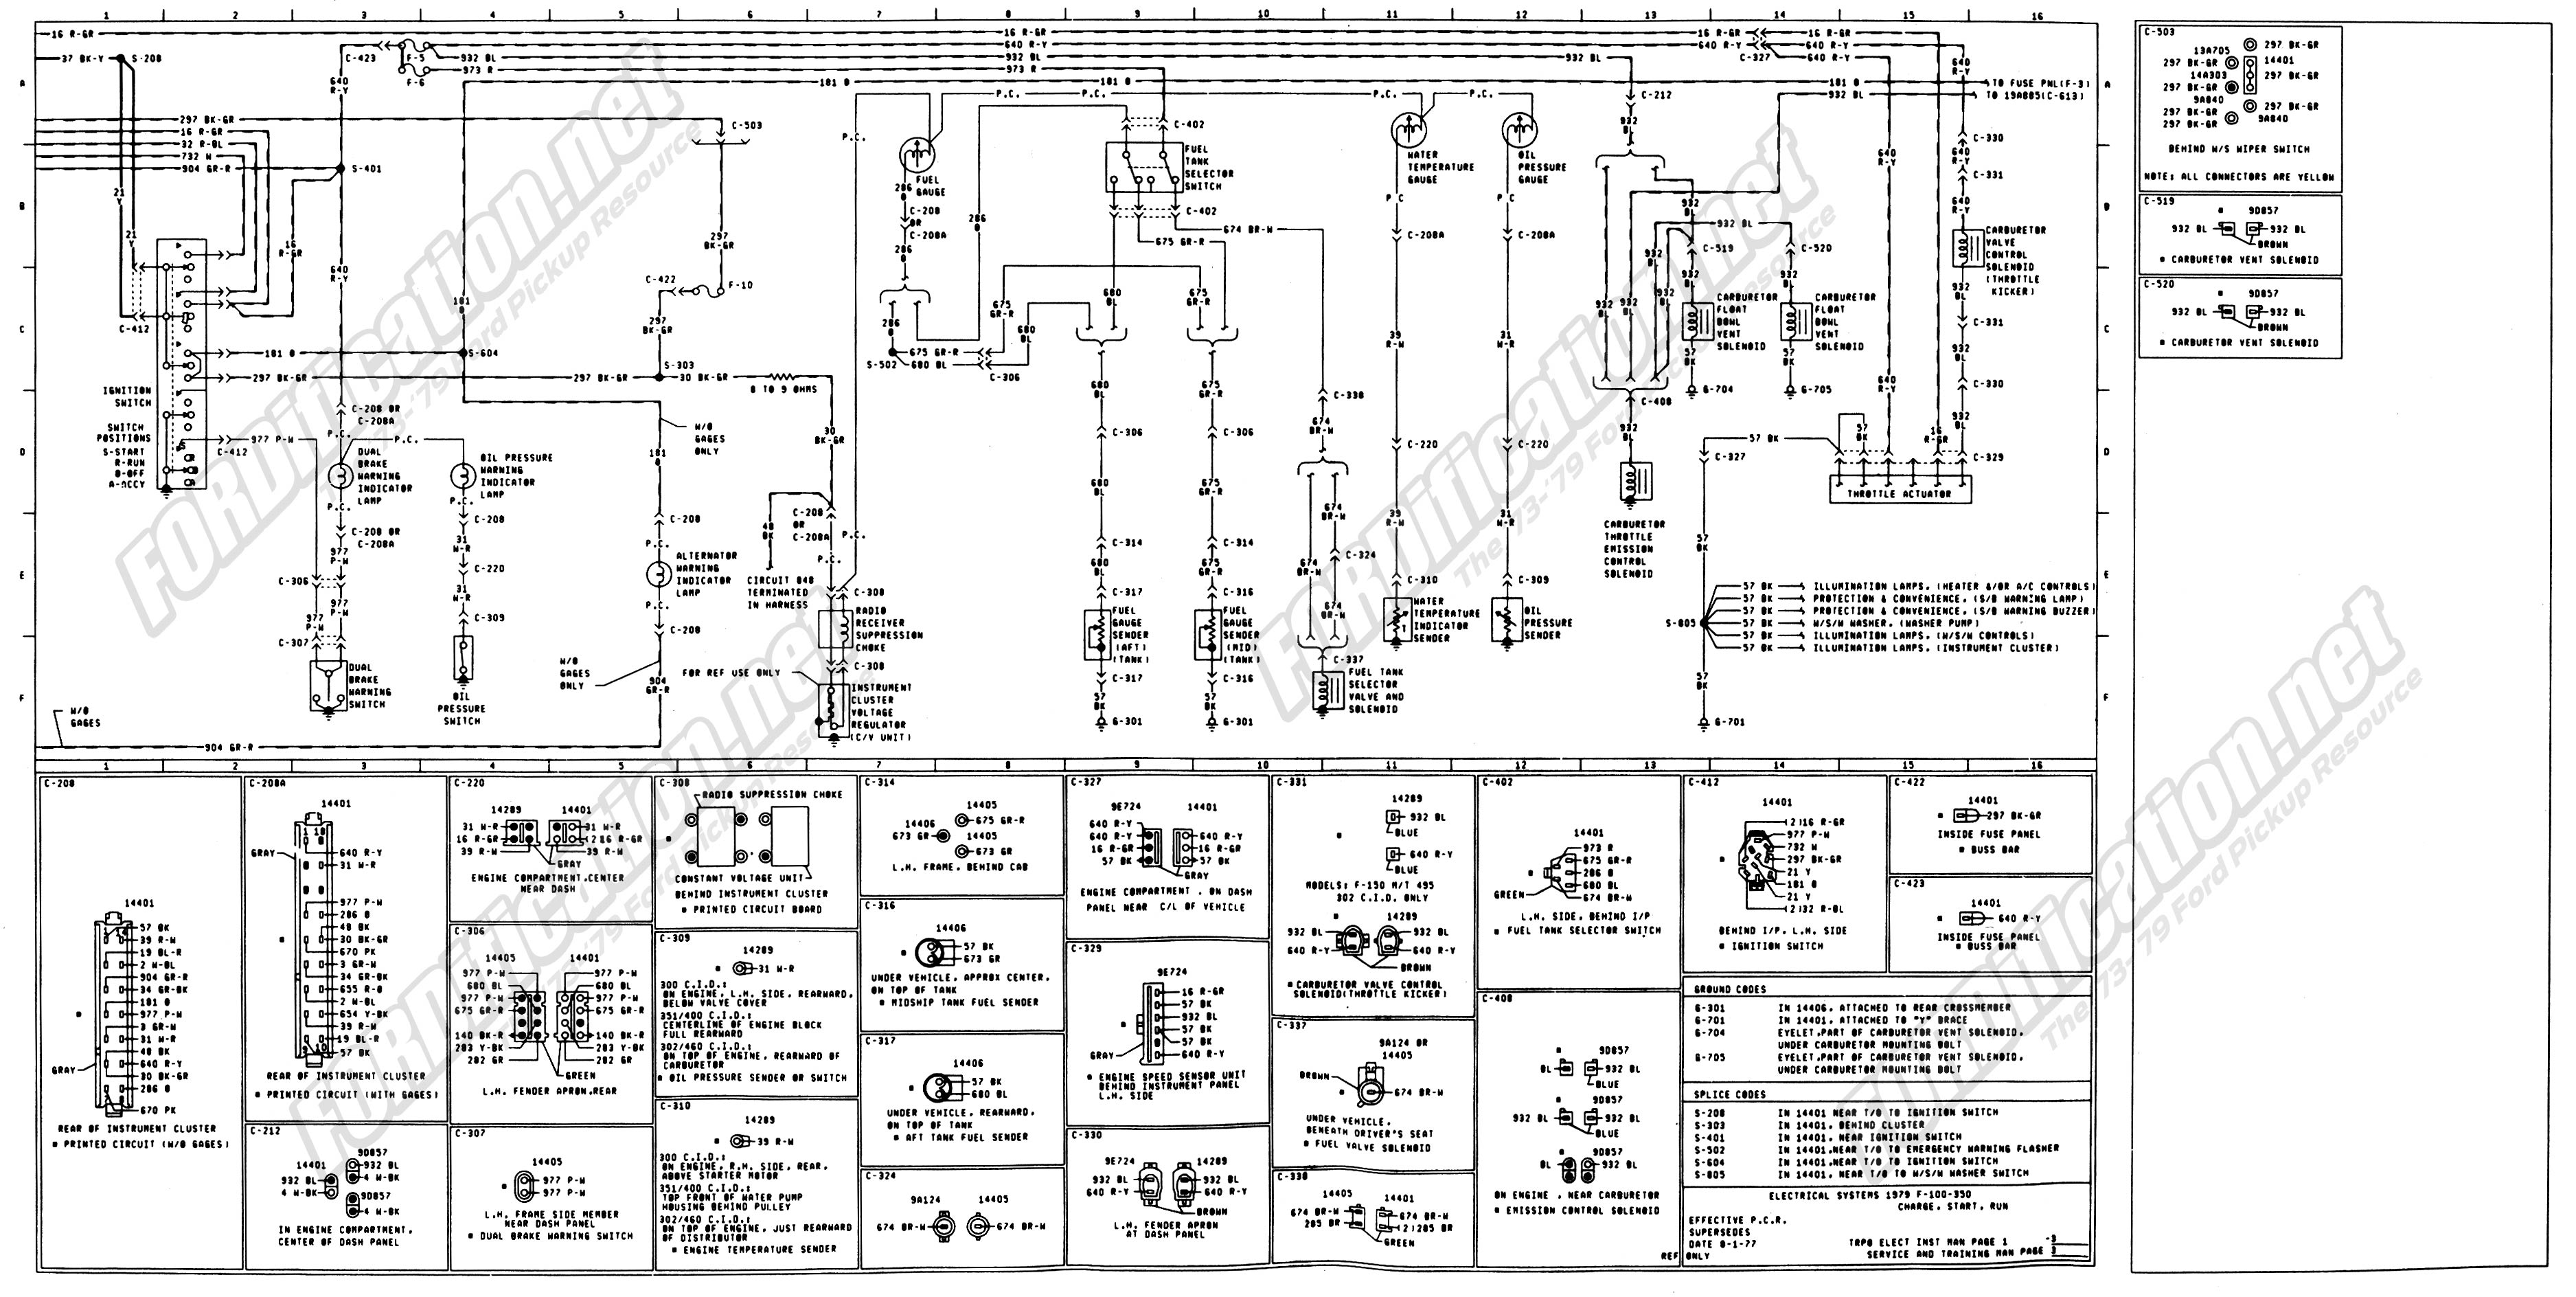 wiring_79master_3of9 1973 1979 ford truck wiring diagrams & schematics fordification net 1973 ford truck wiring diagram at aneh.co